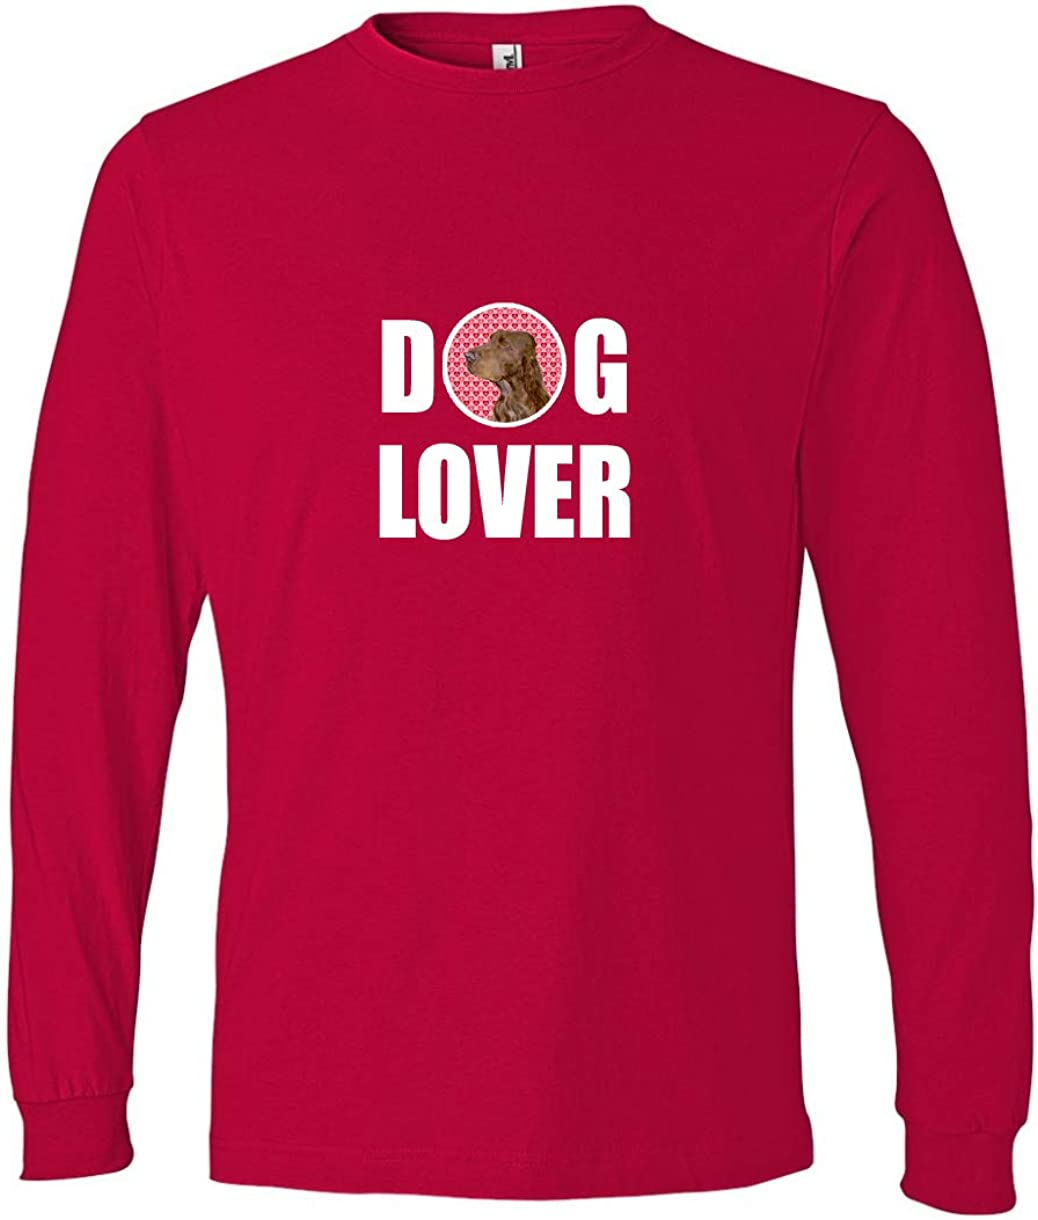 Carolines Treasures SS4525LS-REDU-S Field Spaniel Long Sleeve Red Unisex Adult Small Multicolor S